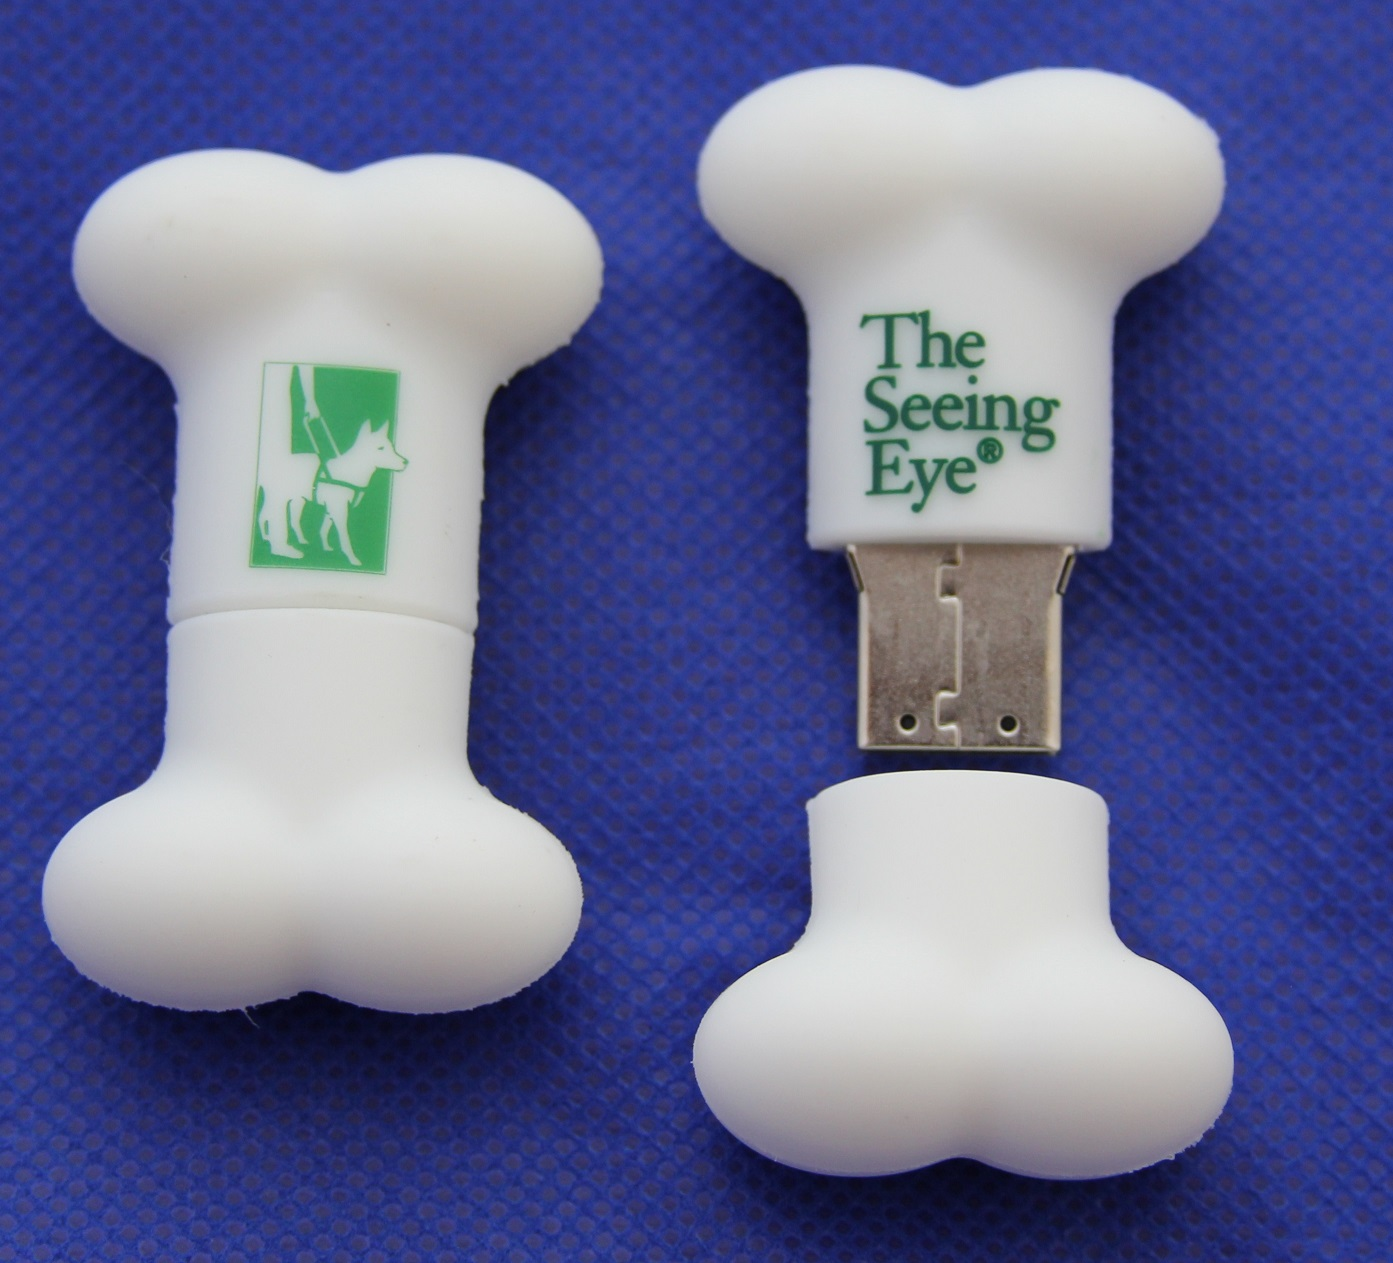 White bone-shaped flash drive with Seeing Eye logo